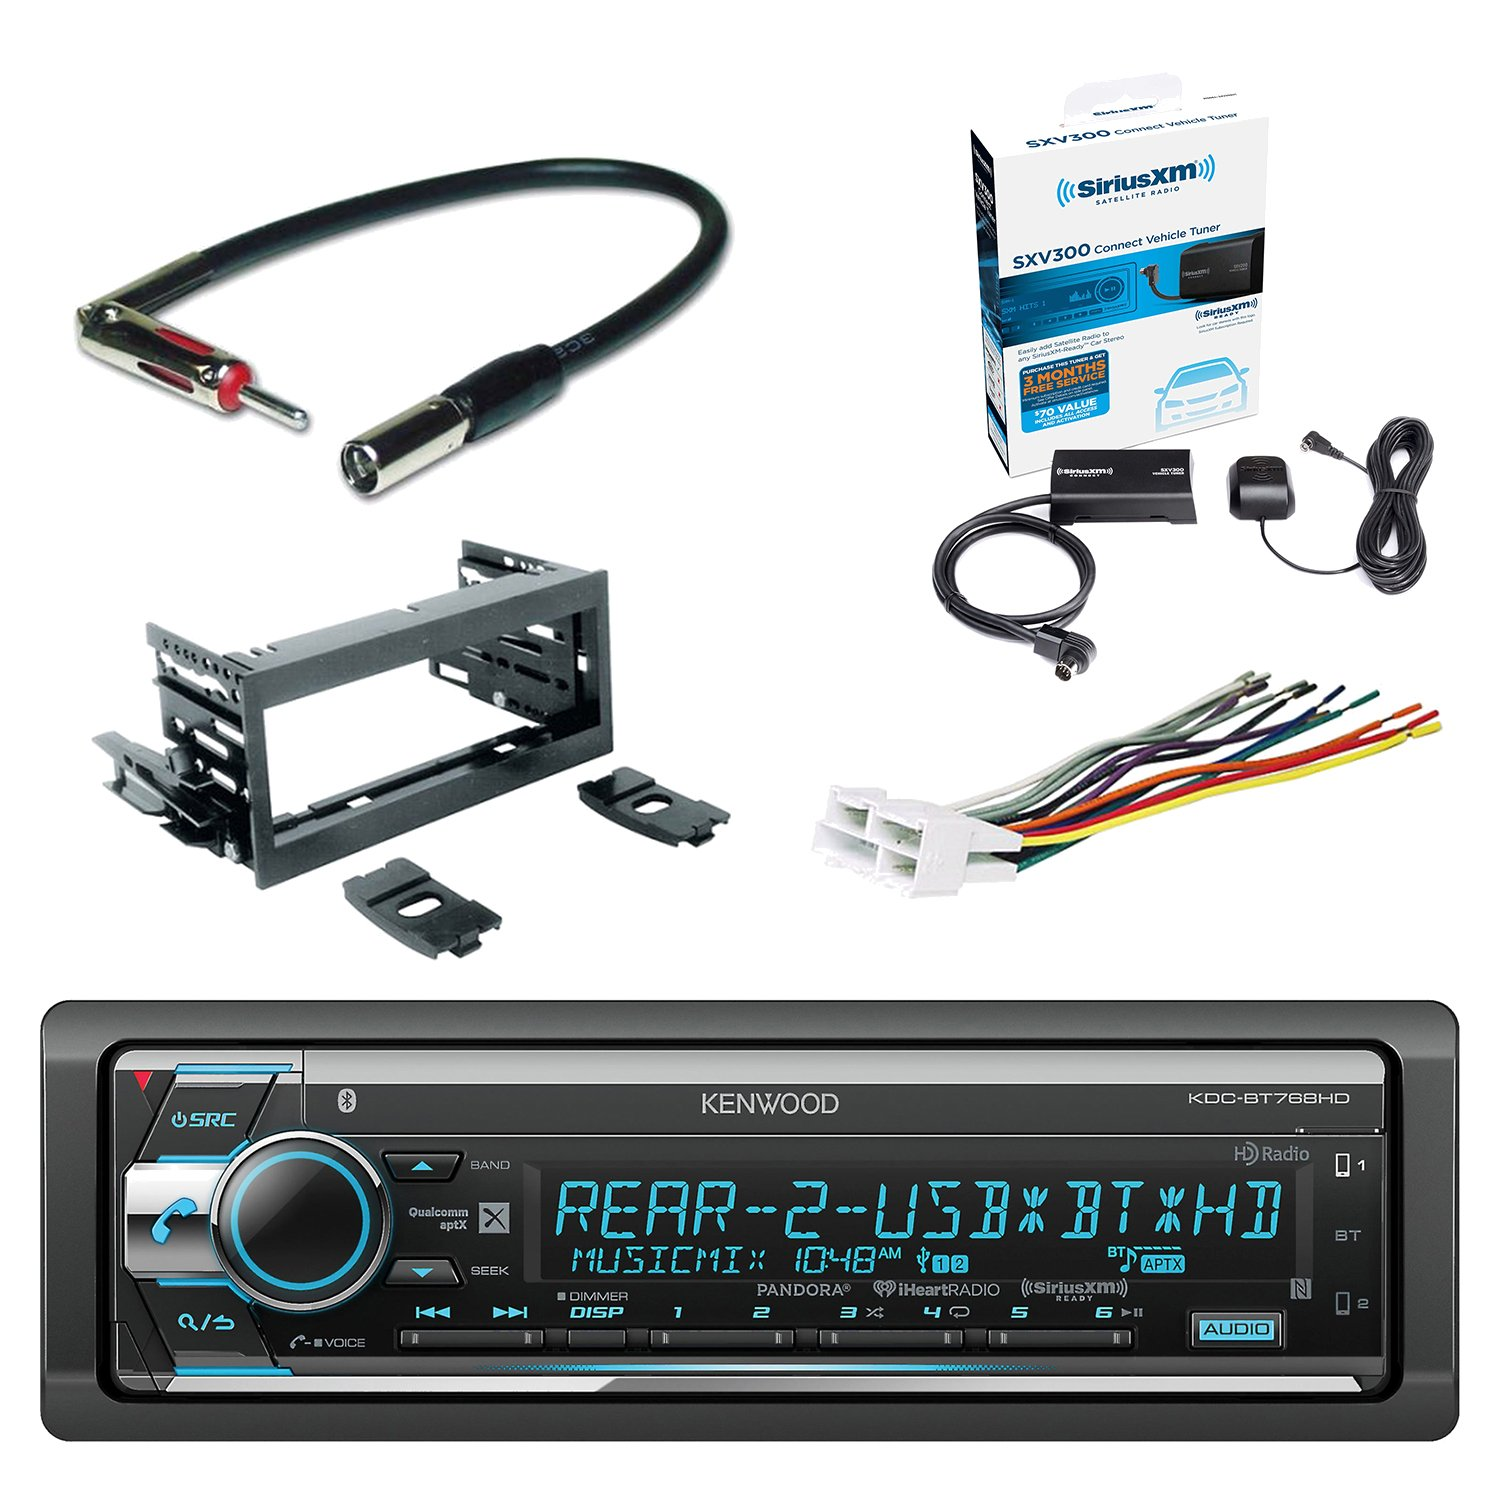 Kenwood Single Din Cd Am Fm Car Audio Receiver With Chevy Xm Radio Wiring Harness Color Code Bluetooth Siriusxm Satellite Vehicle Tuner Kit Scosche Dash Gm